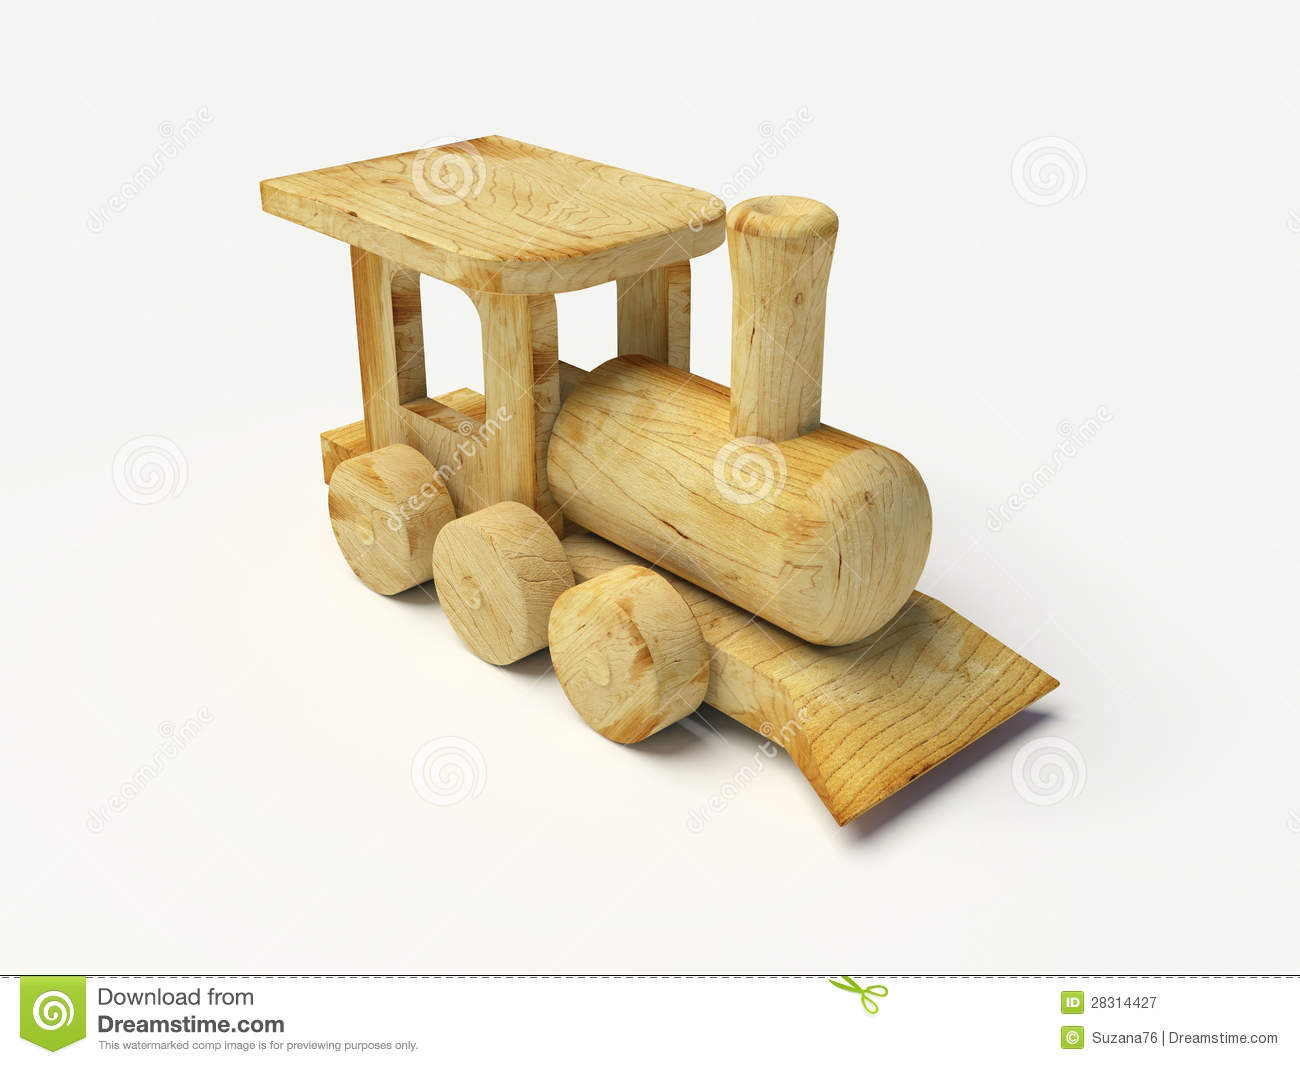 Wooden Toy Train Royalty Free Stock Photography - Image: 28314427